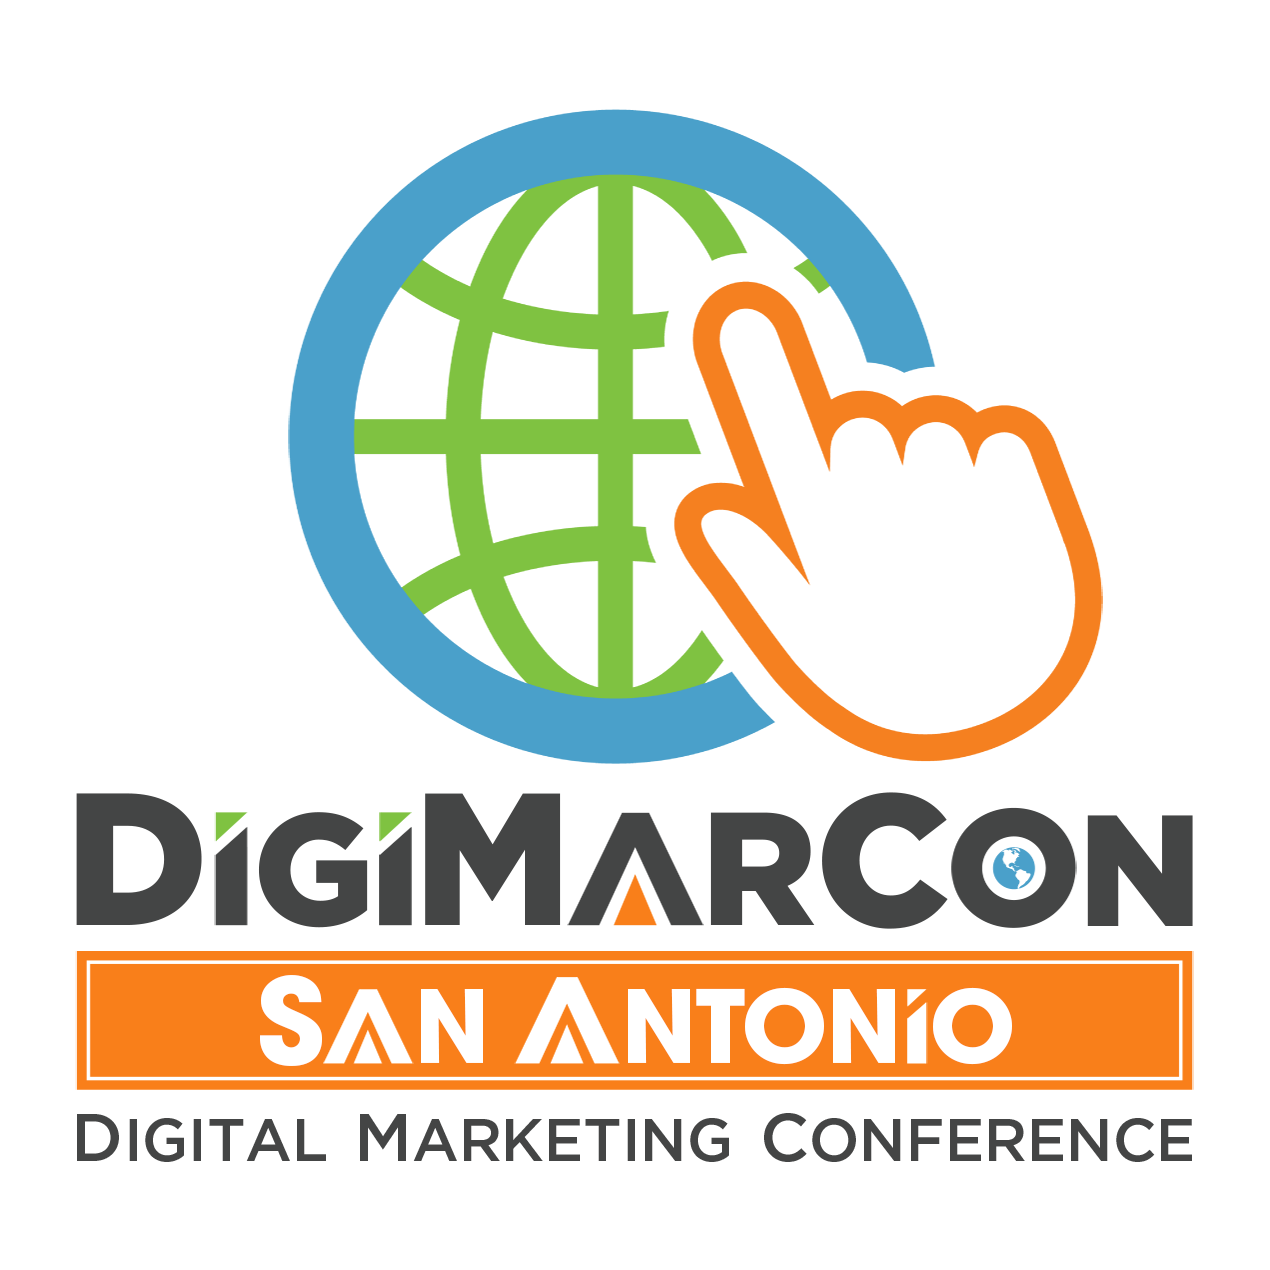 San Antonio Digital Marketing, Media & Advertising Conference